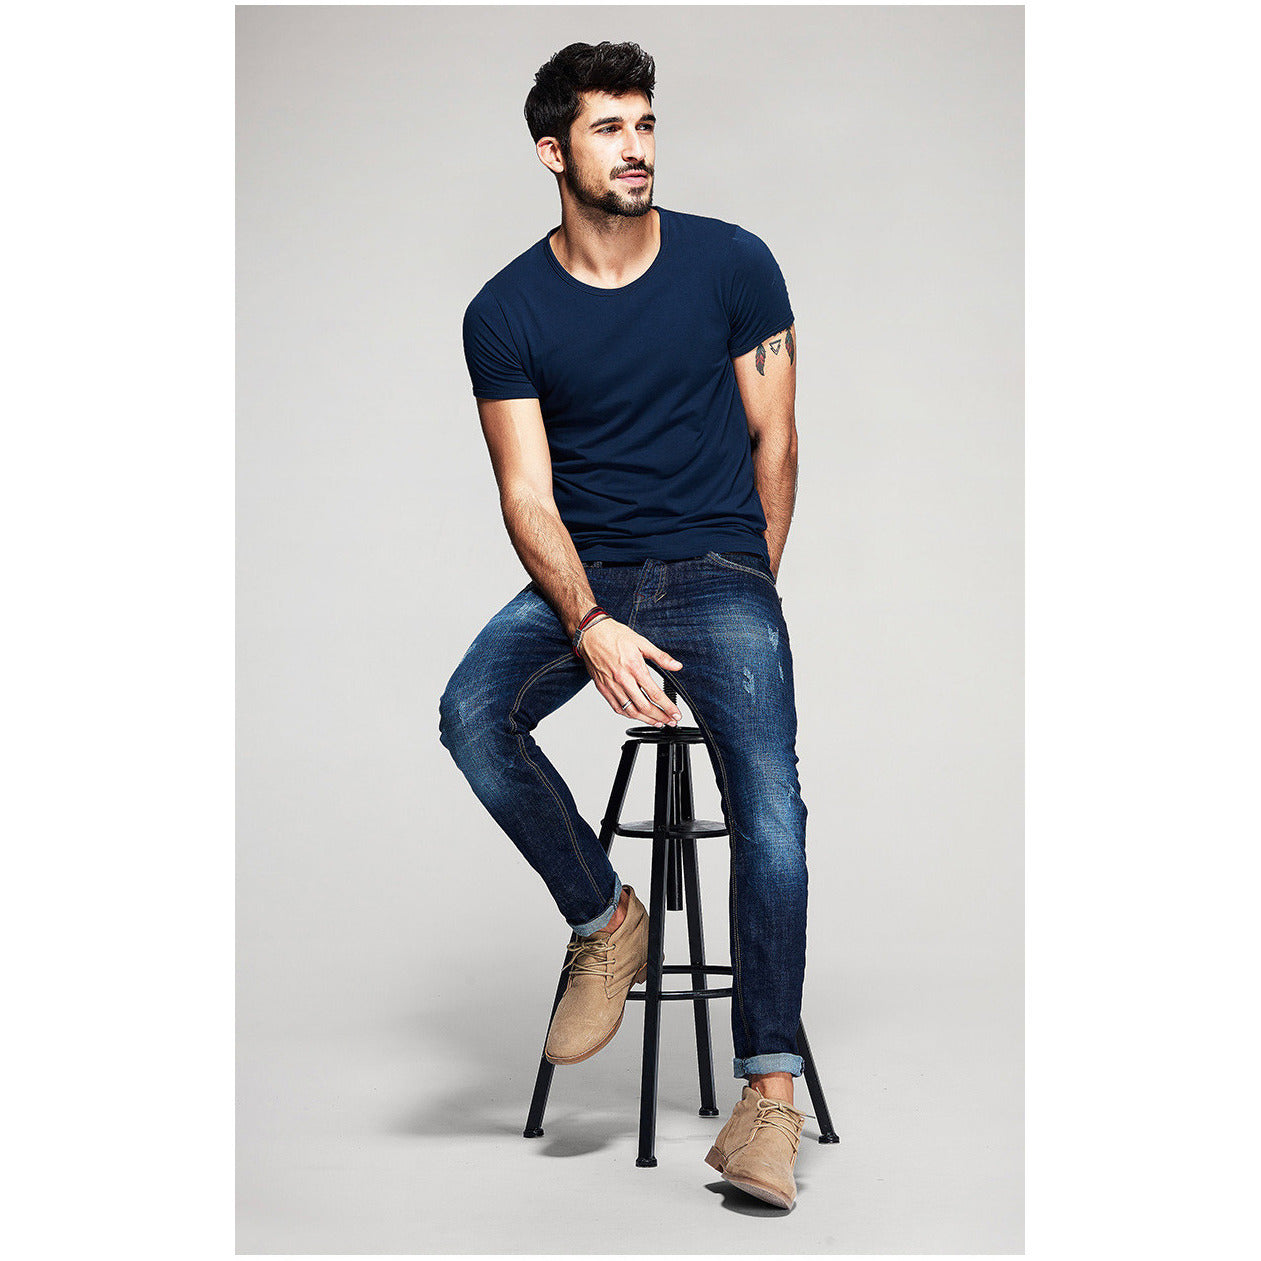 Blue Basic Slim Fit Crew Neck T-Shirt - Haberfasher